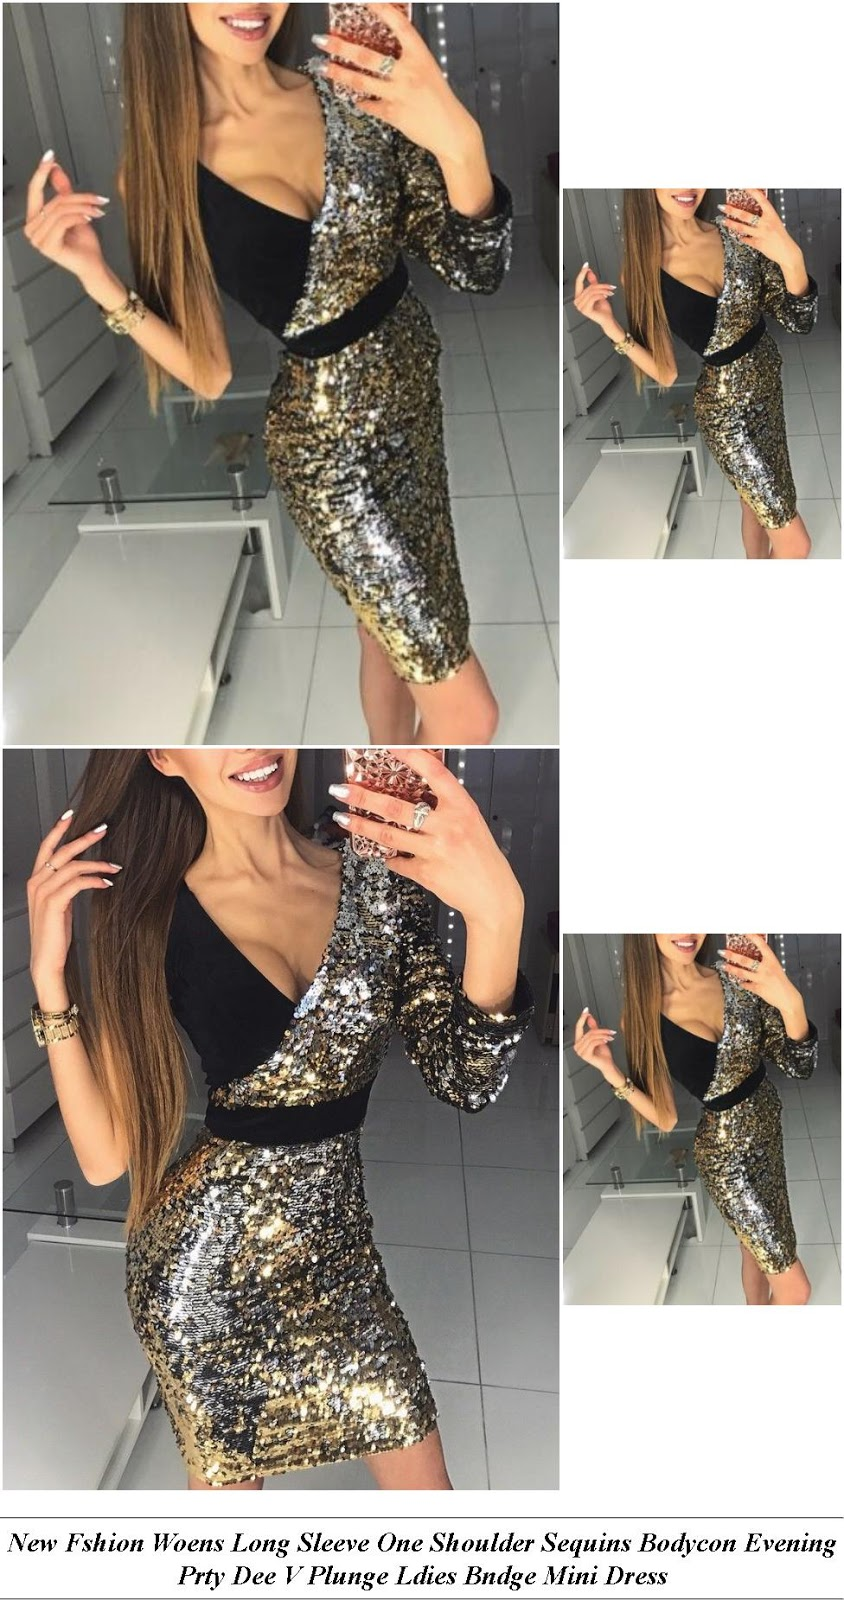 Gorgeous Dresses Vk - Womens Outique Clothing Stores Near Me - Fashion Dress Instagram